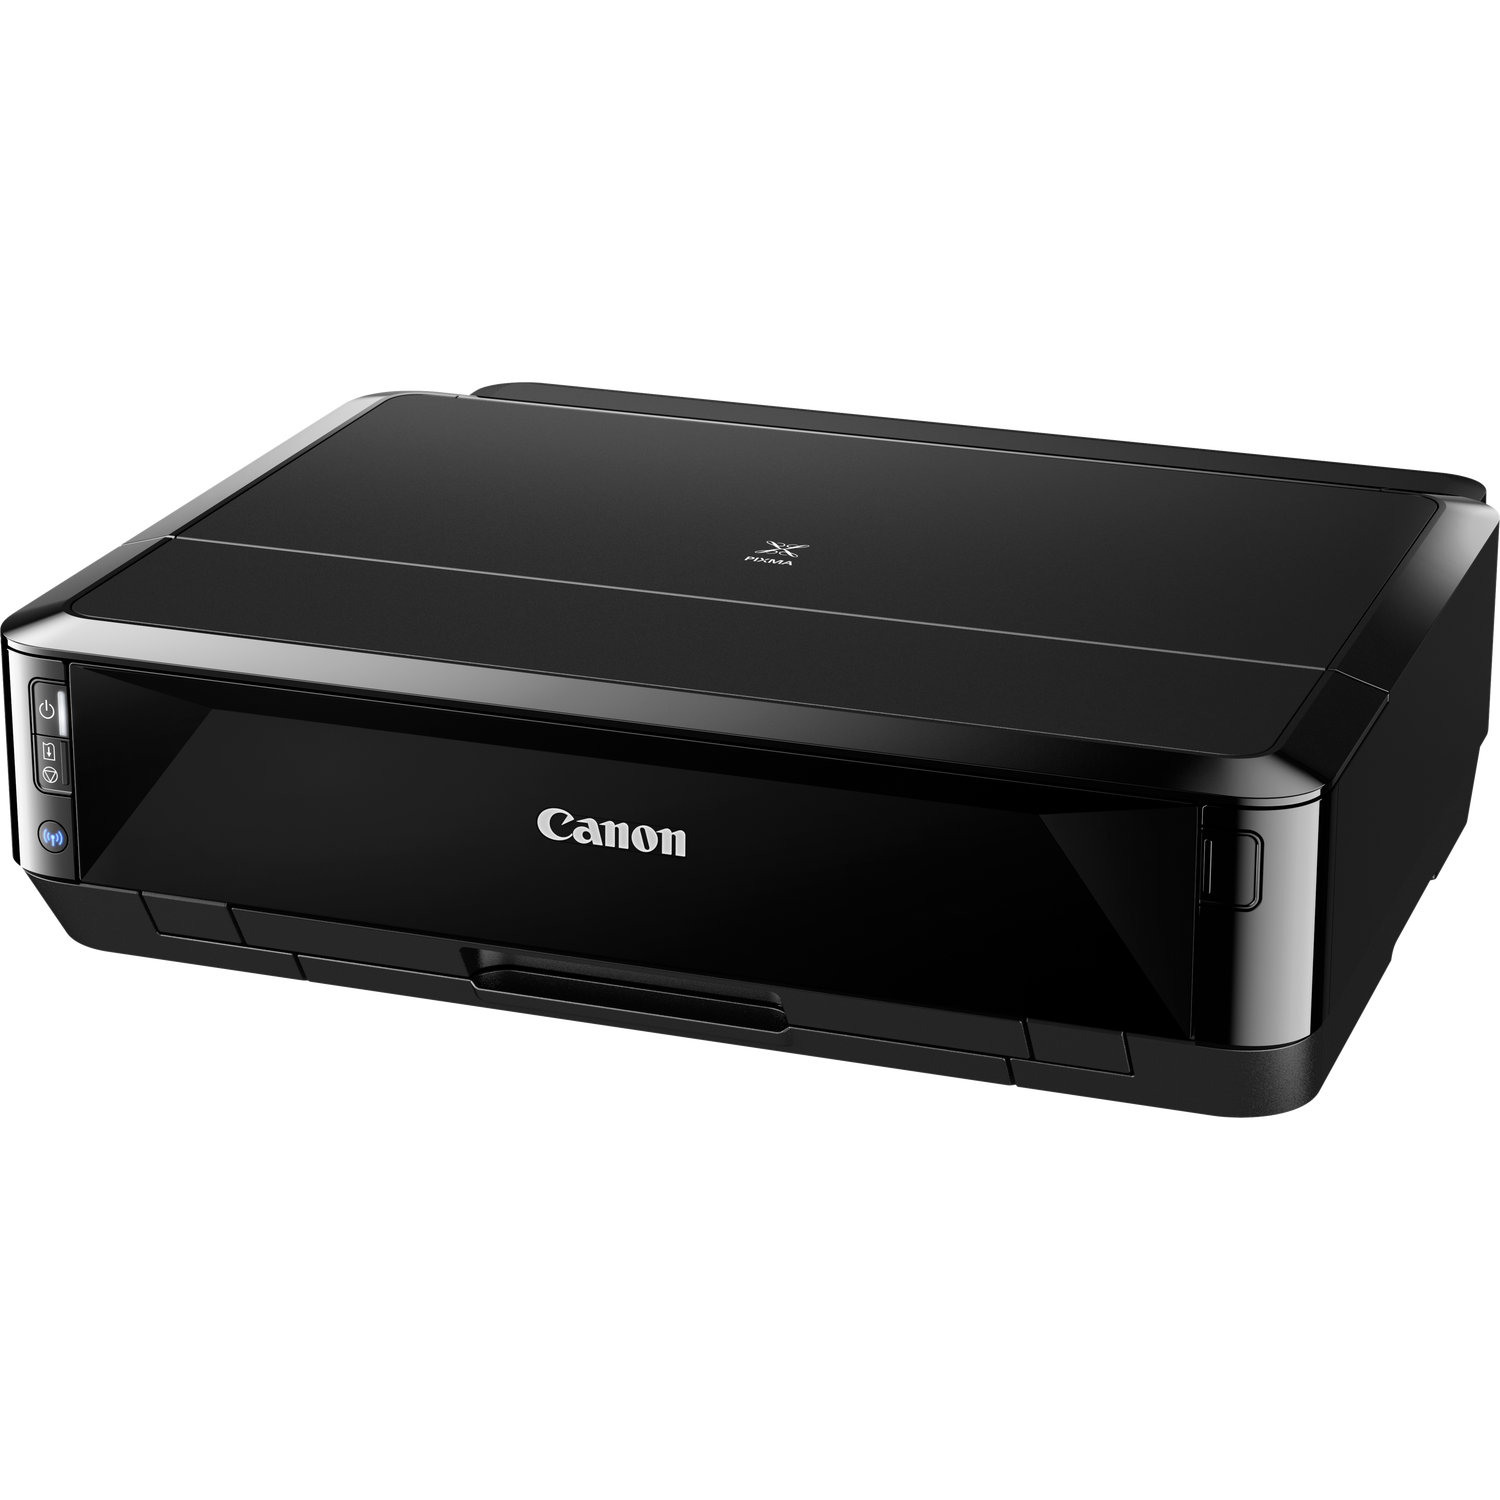 canon pixma ip7250 in wlan drucker canon austria store. Black Bedroom Furniture Sets. Home Design Ideas